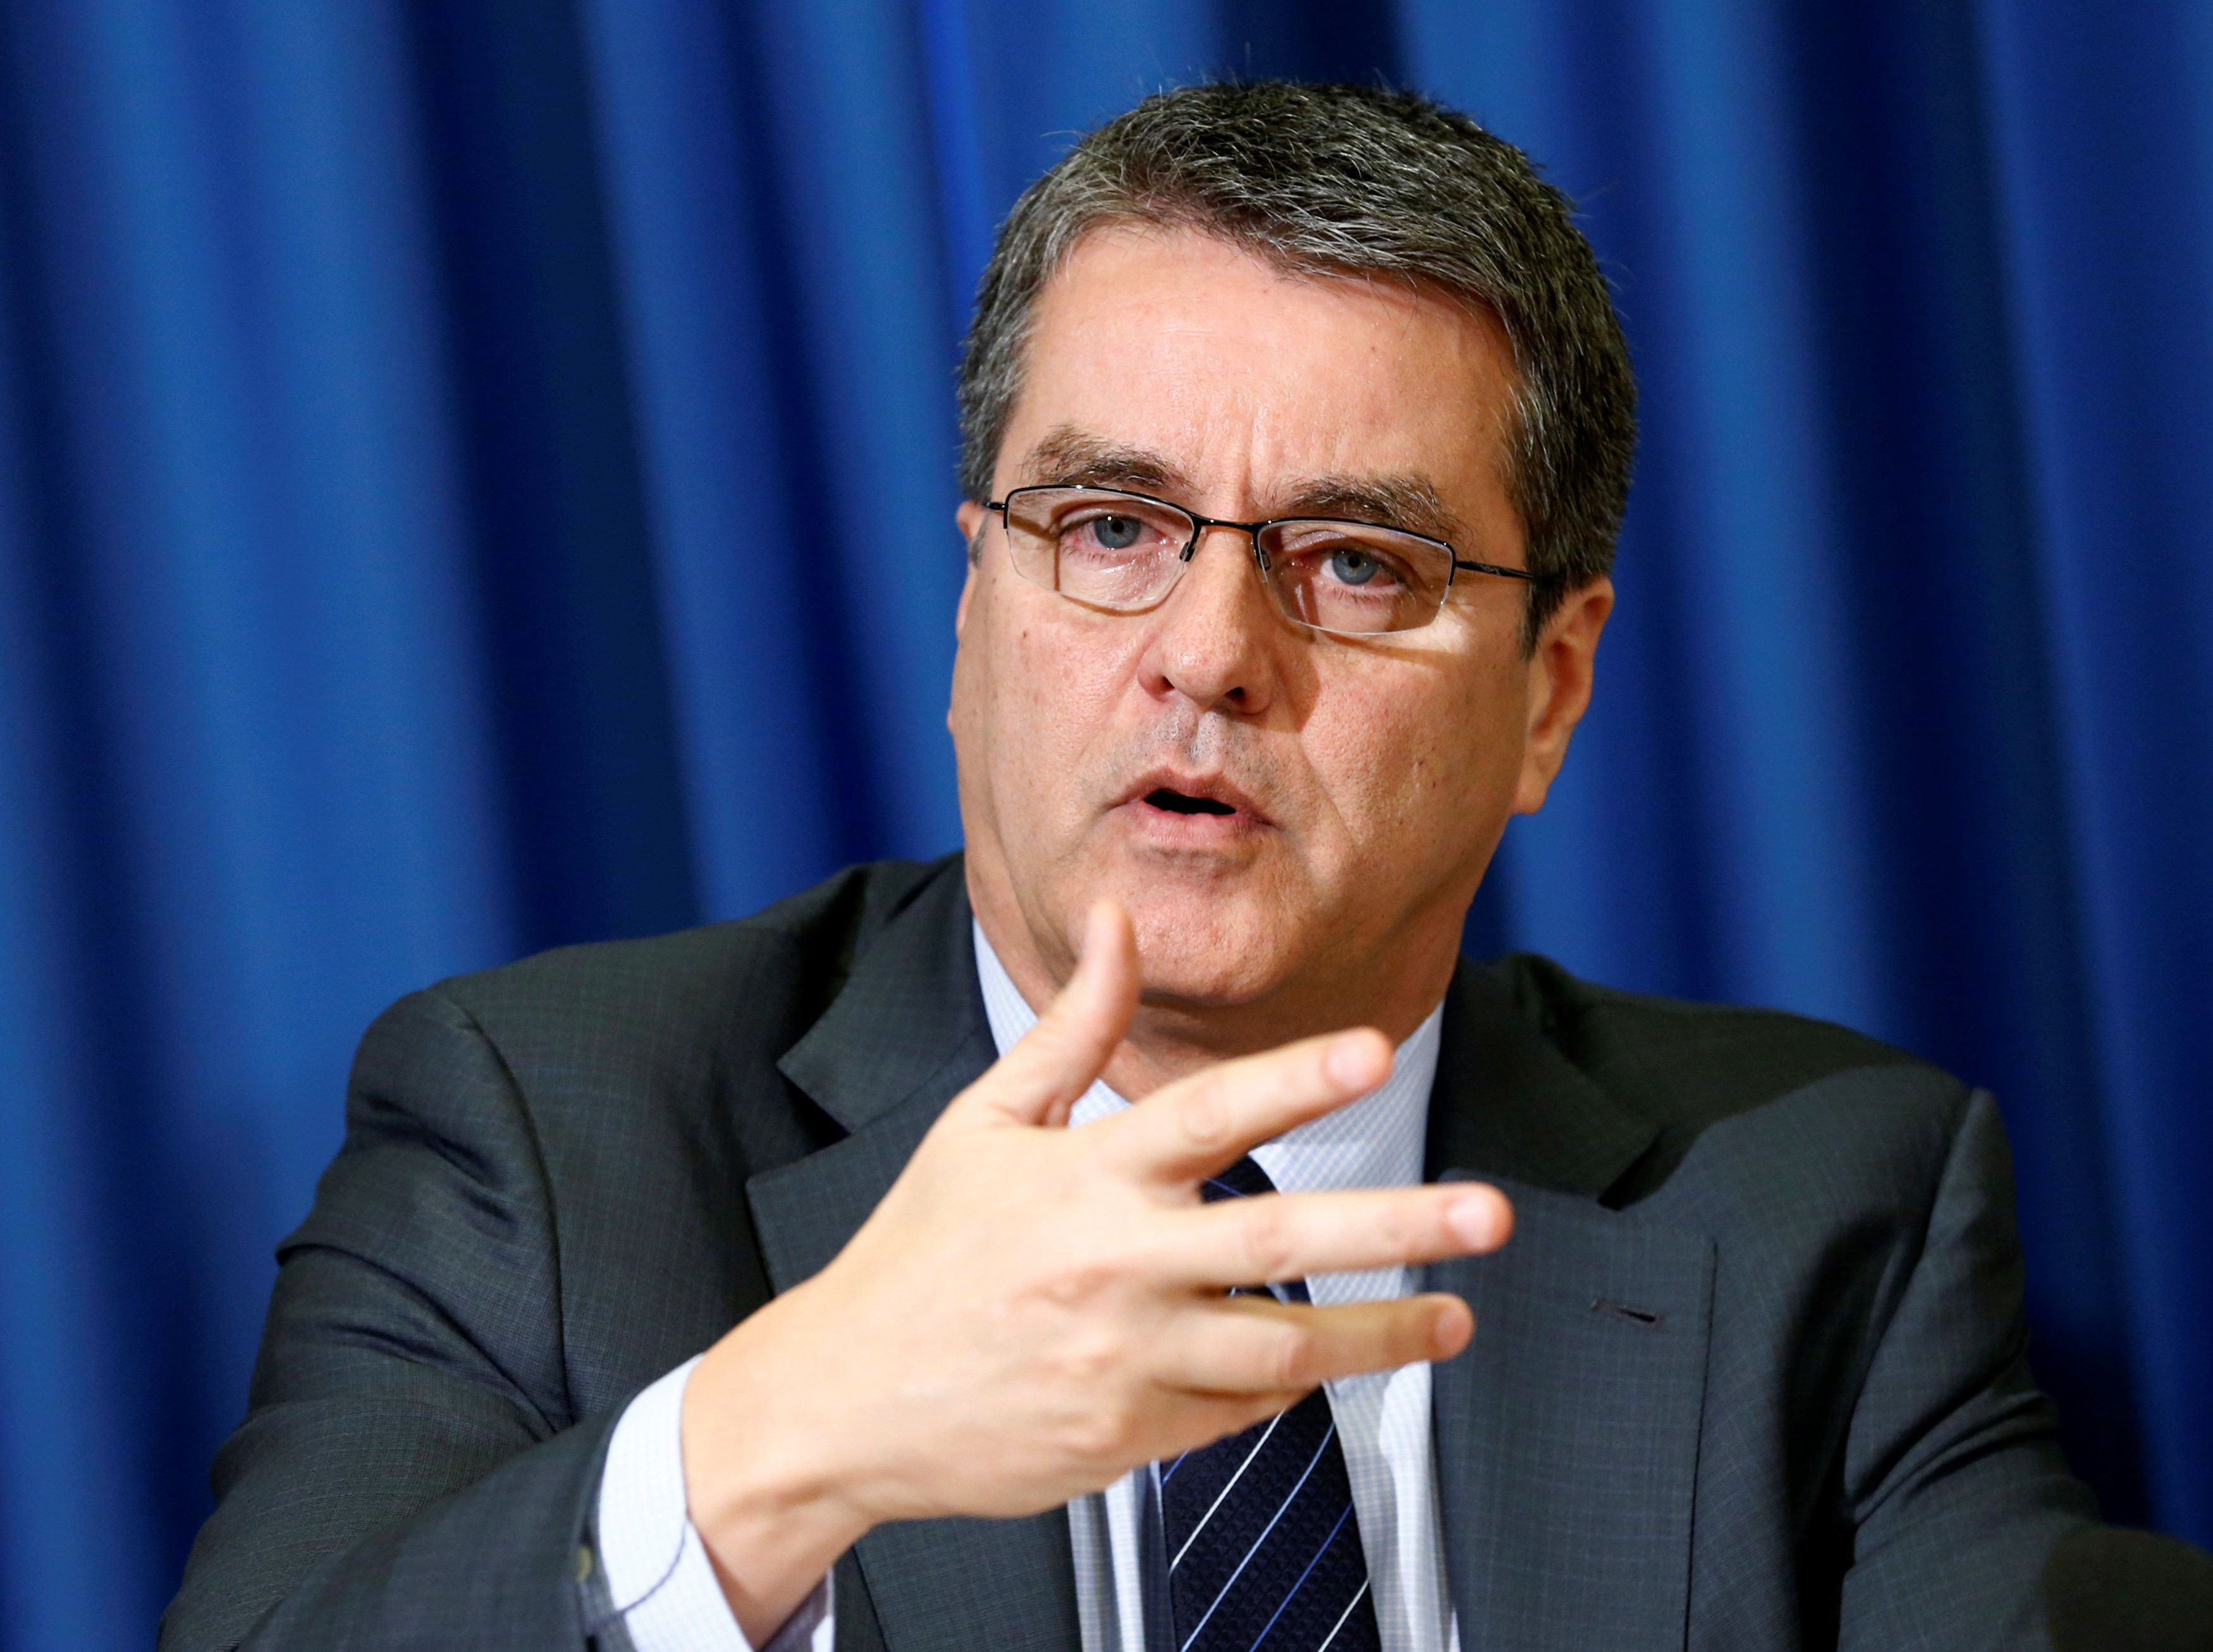 World Trade Organization chief Roberto Azevedo said President-elect Donald Trump hasn't indicated plans to withdraw the U.S.